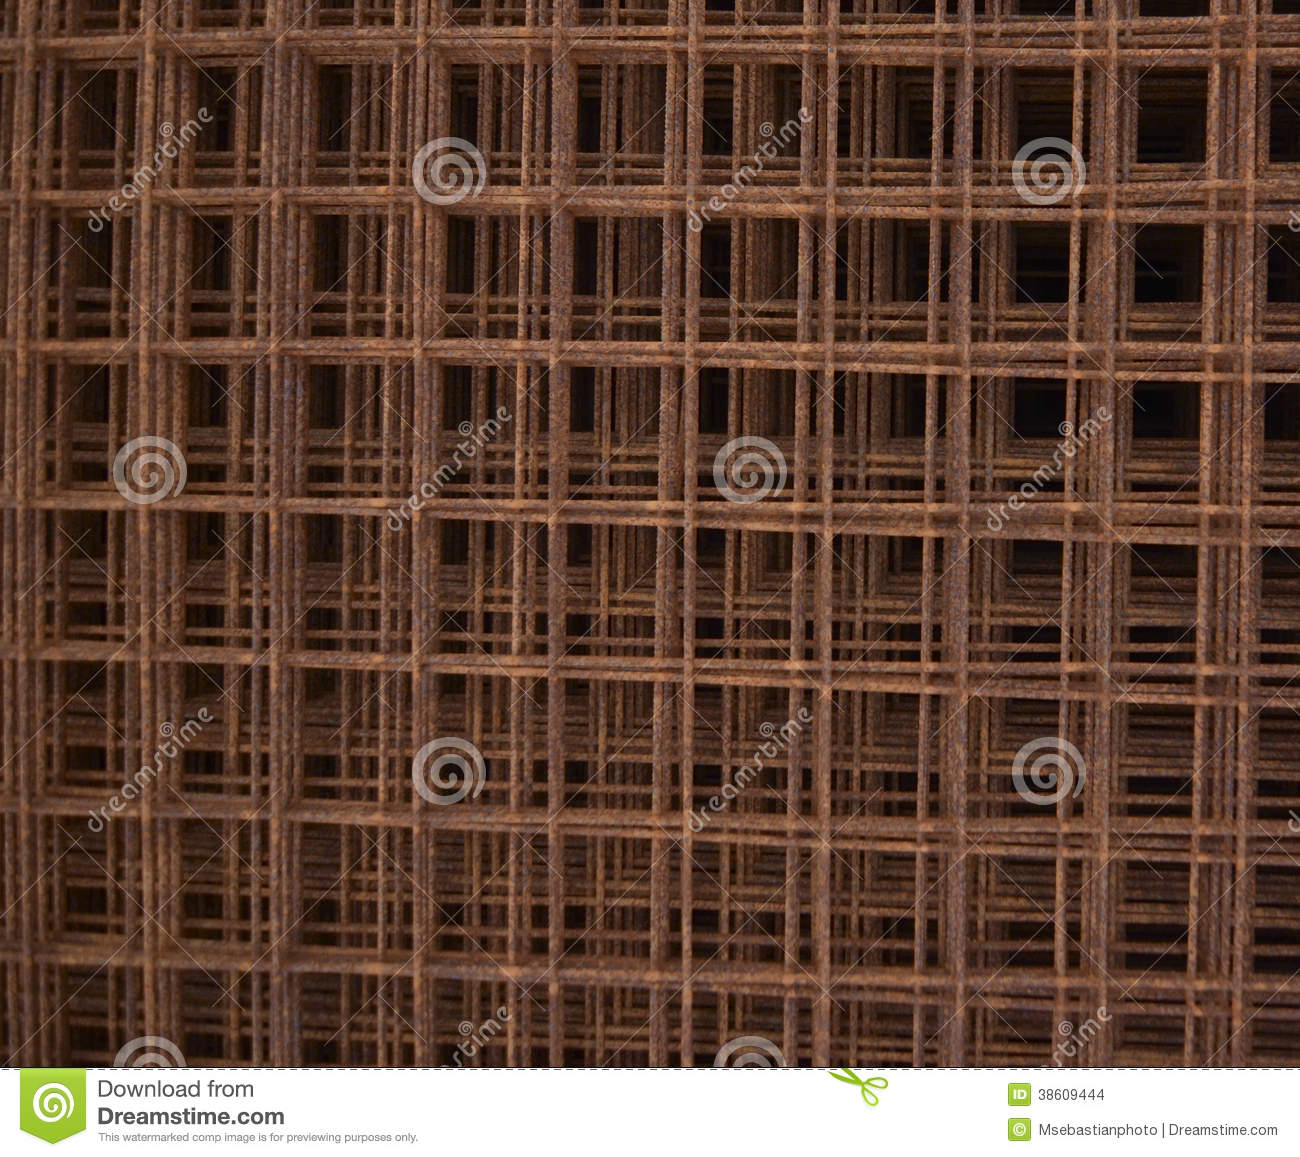 Welded wire fabric (WWF) stock image. Image of rust, industry - 29156177